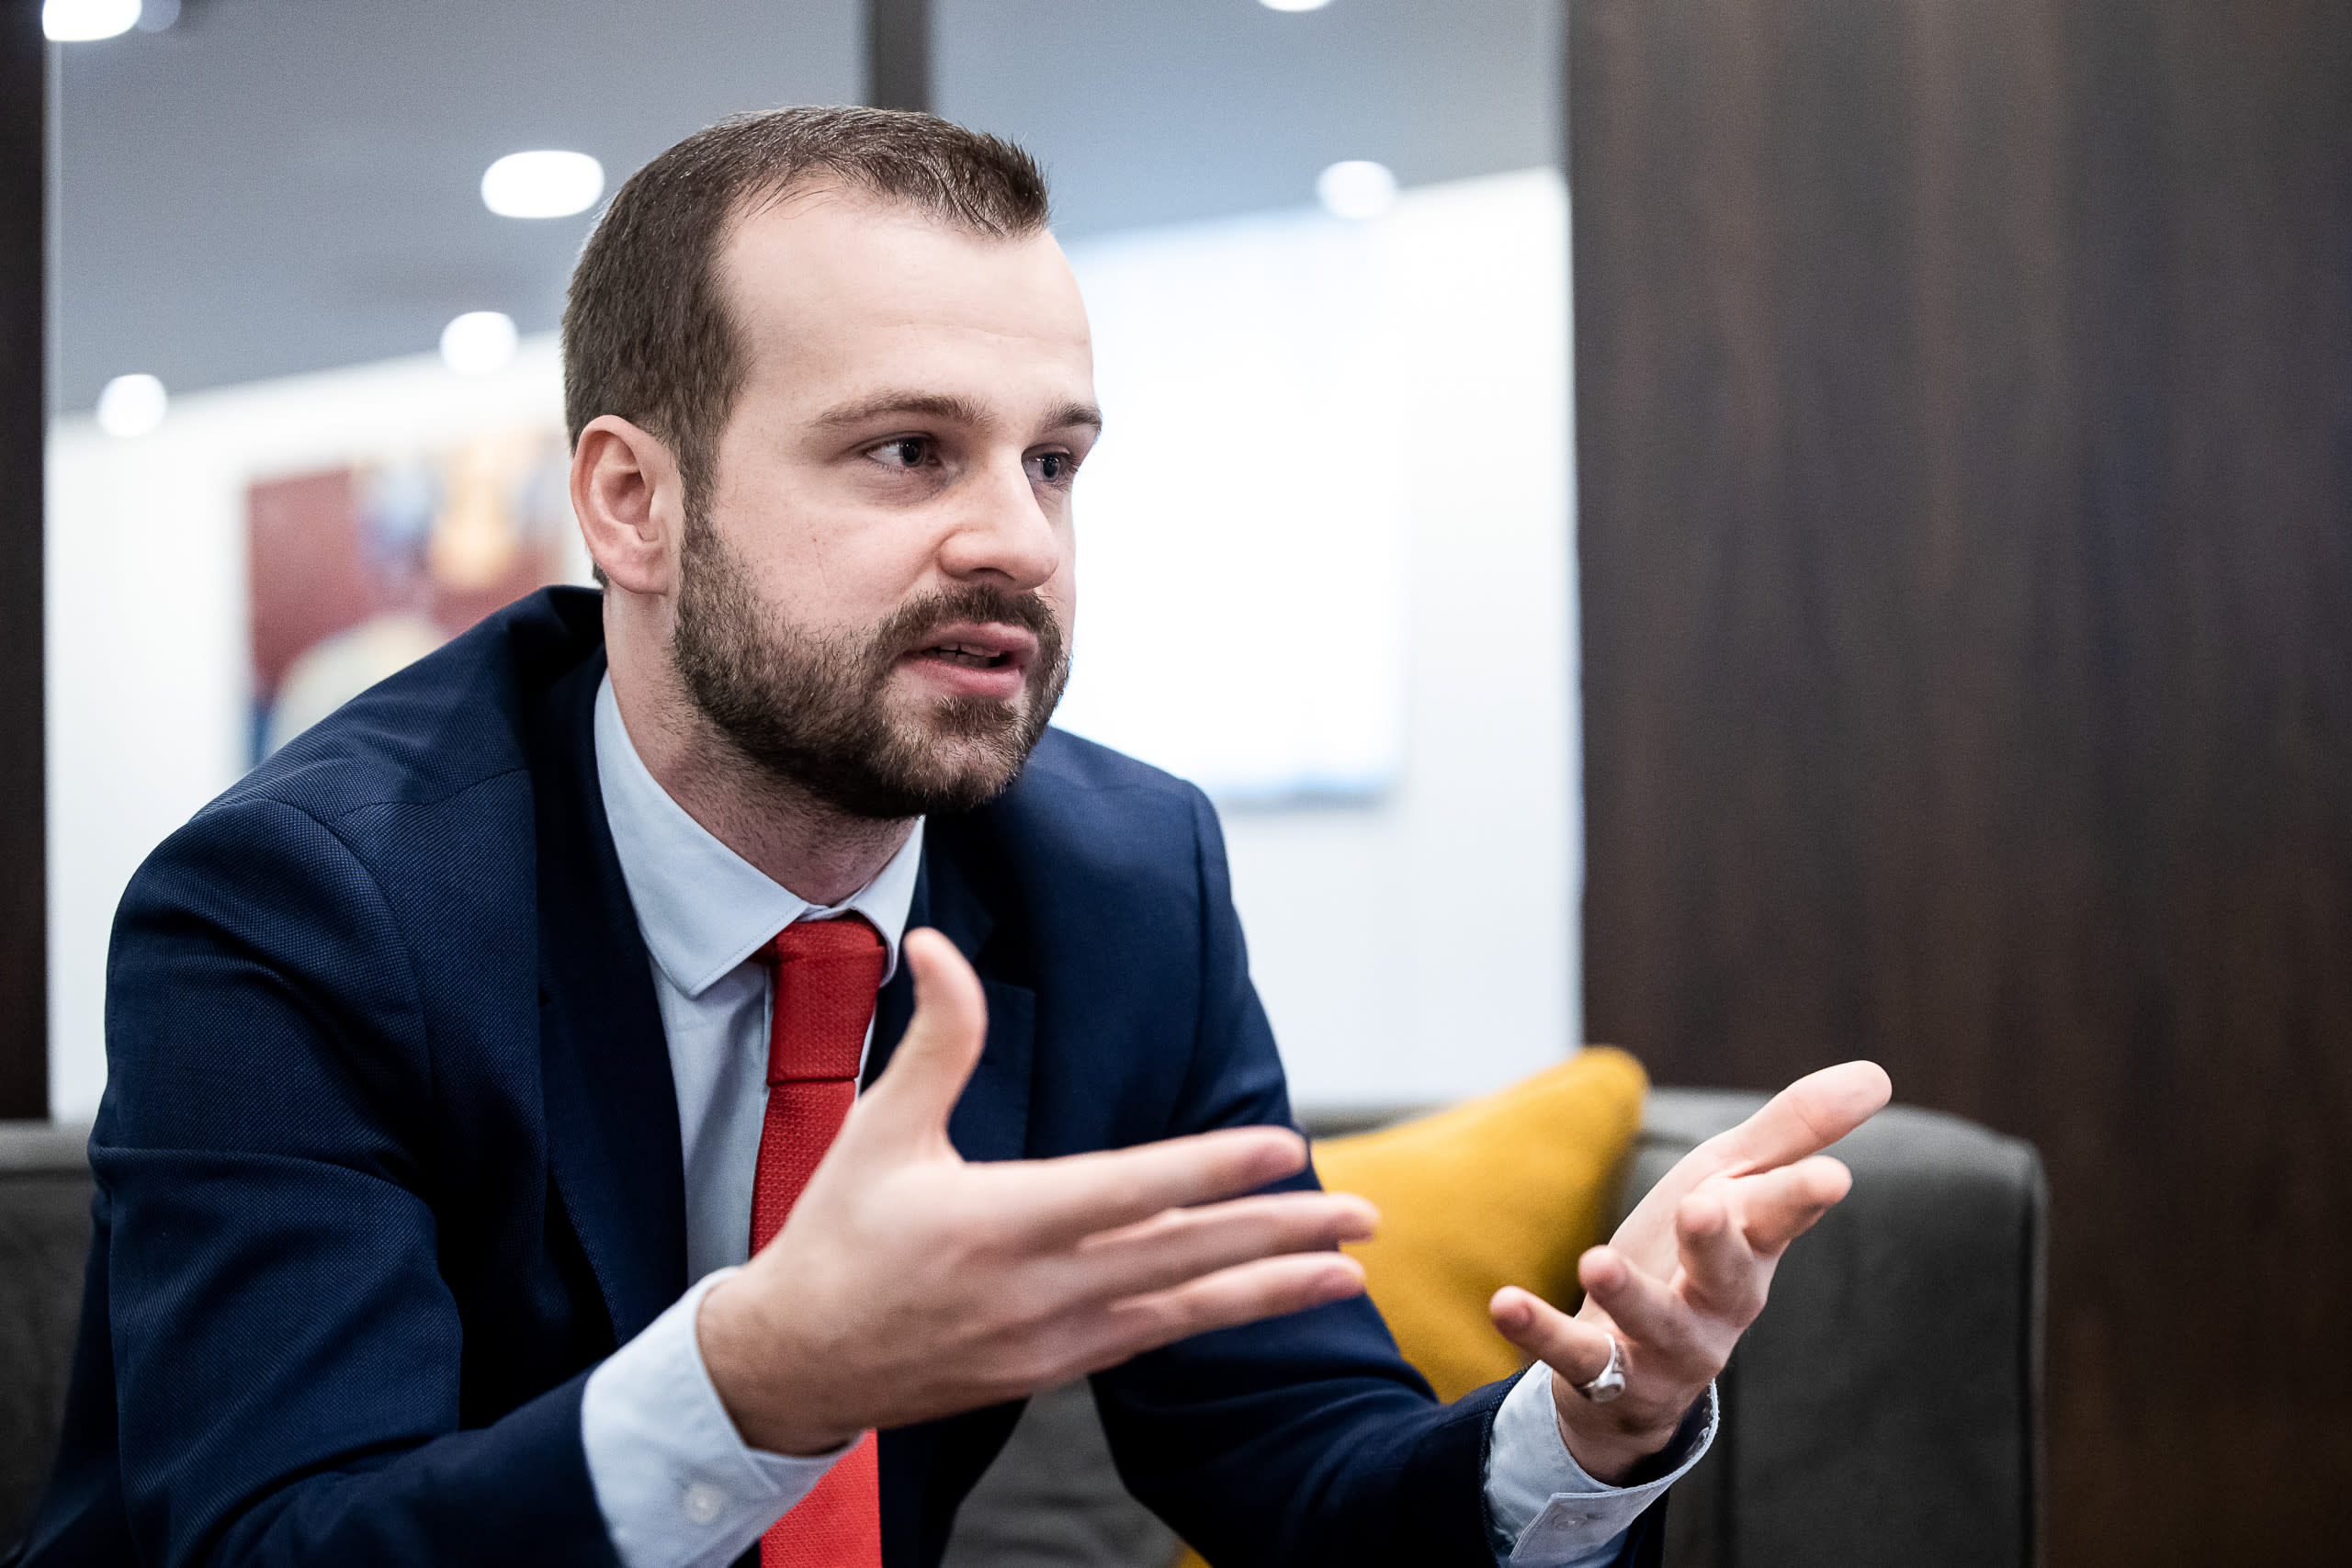 IIB Chief Economist gives his overview on the COVID-19 effect and 2021 outlook for the economies of Central and Eastern Europe member states of the Bank